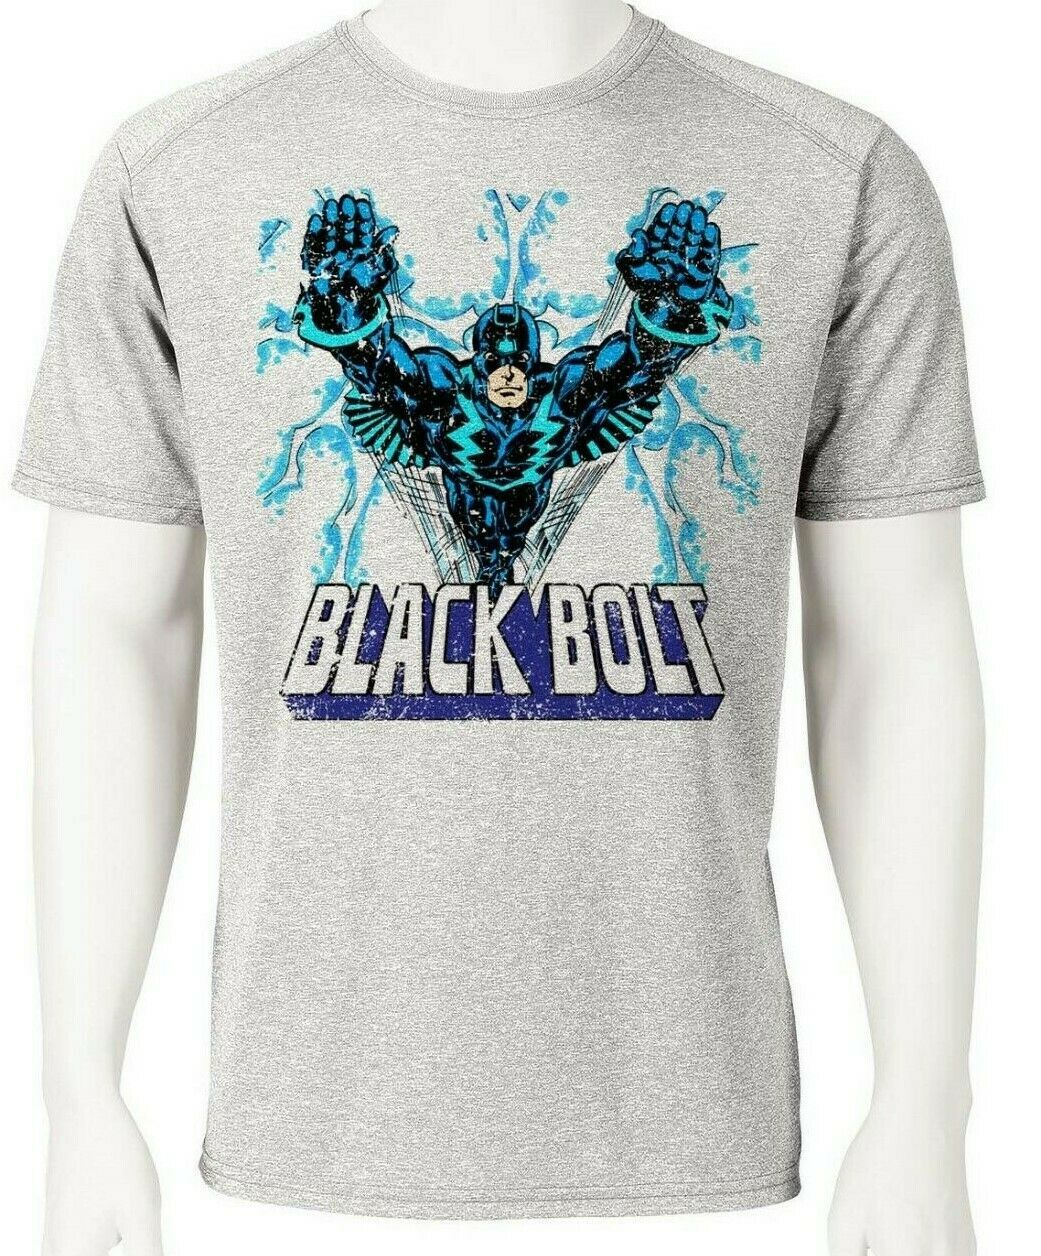 Black bolt dri fit graphic tshirt moisture retro